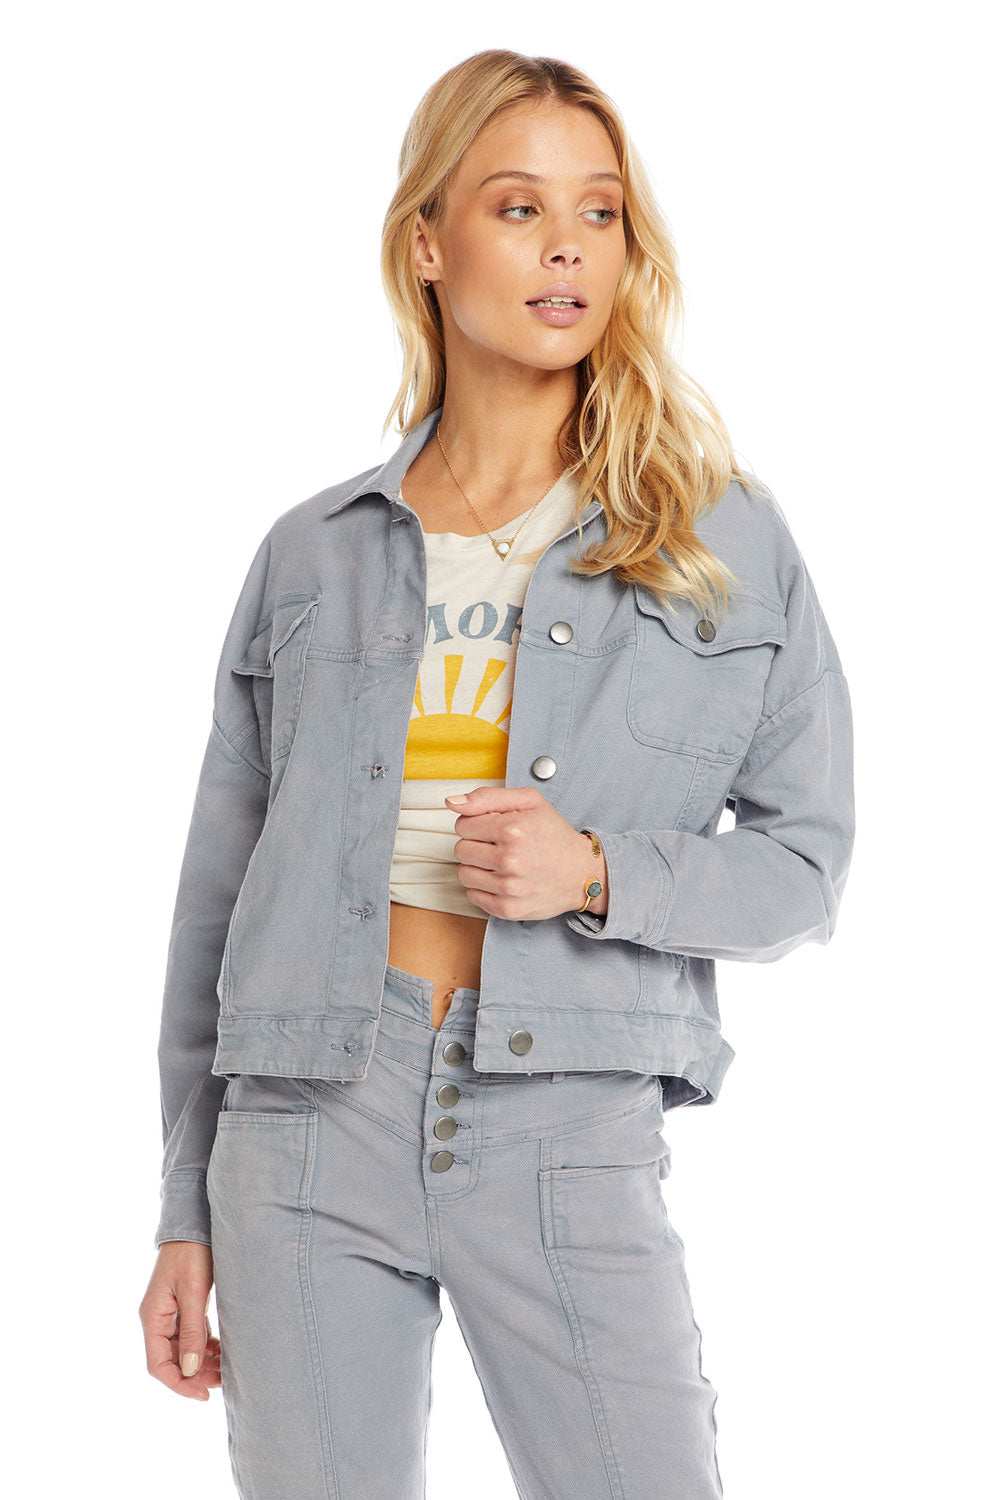 4327255dd0 Vintage Canvas Drop Shoulder Trucker Jacket, WOMENS, chaserbrand.com,chaser  clothing,